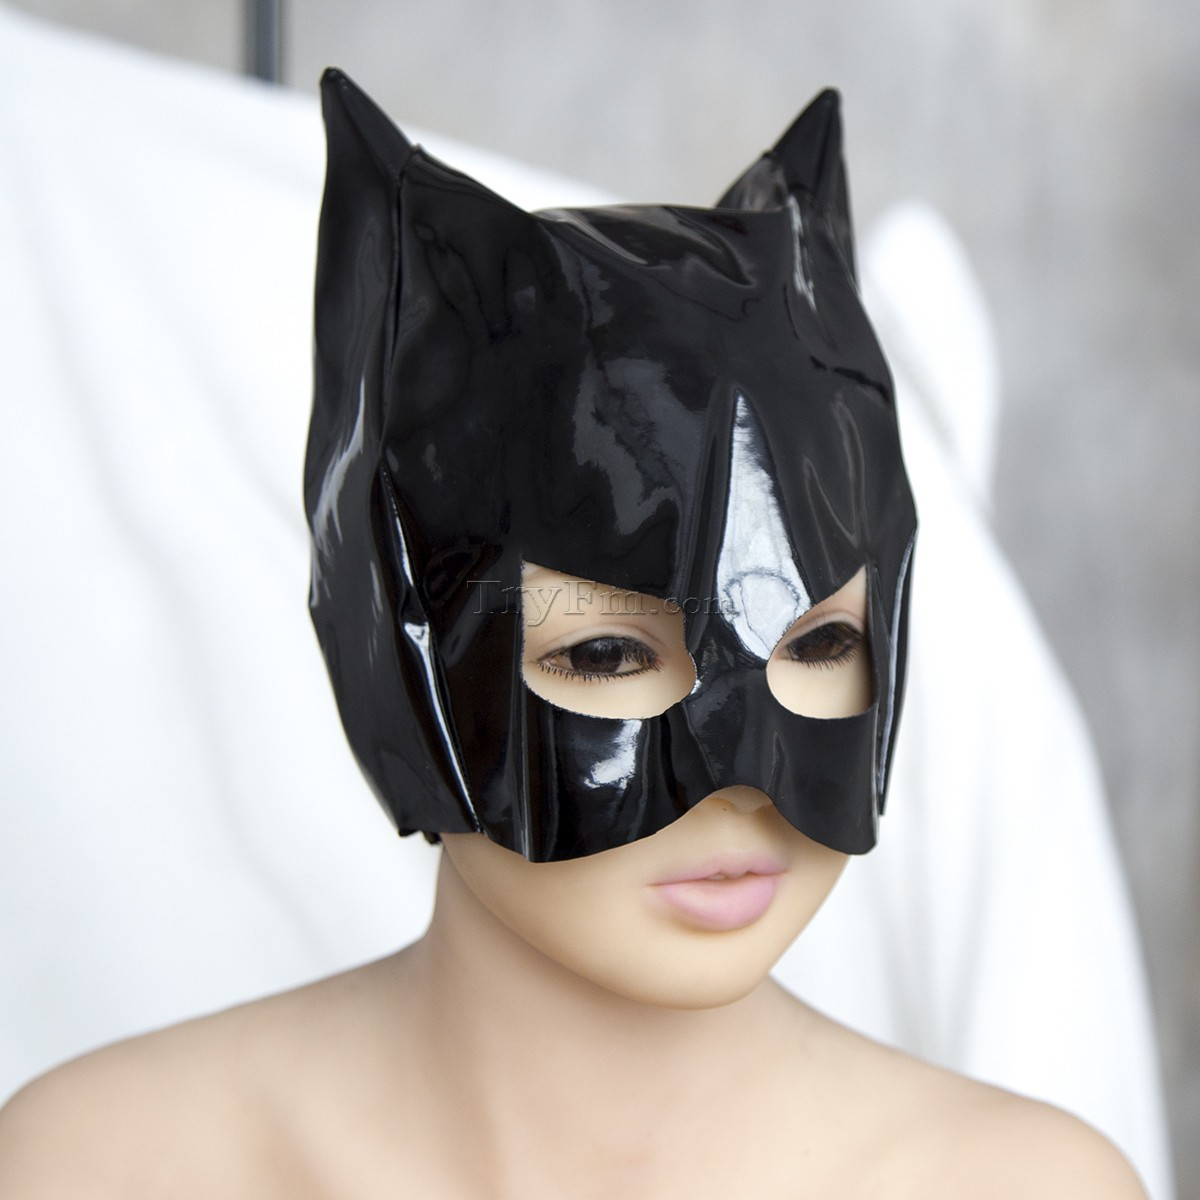 11-Sexy-Evil-Catwoman.jpg